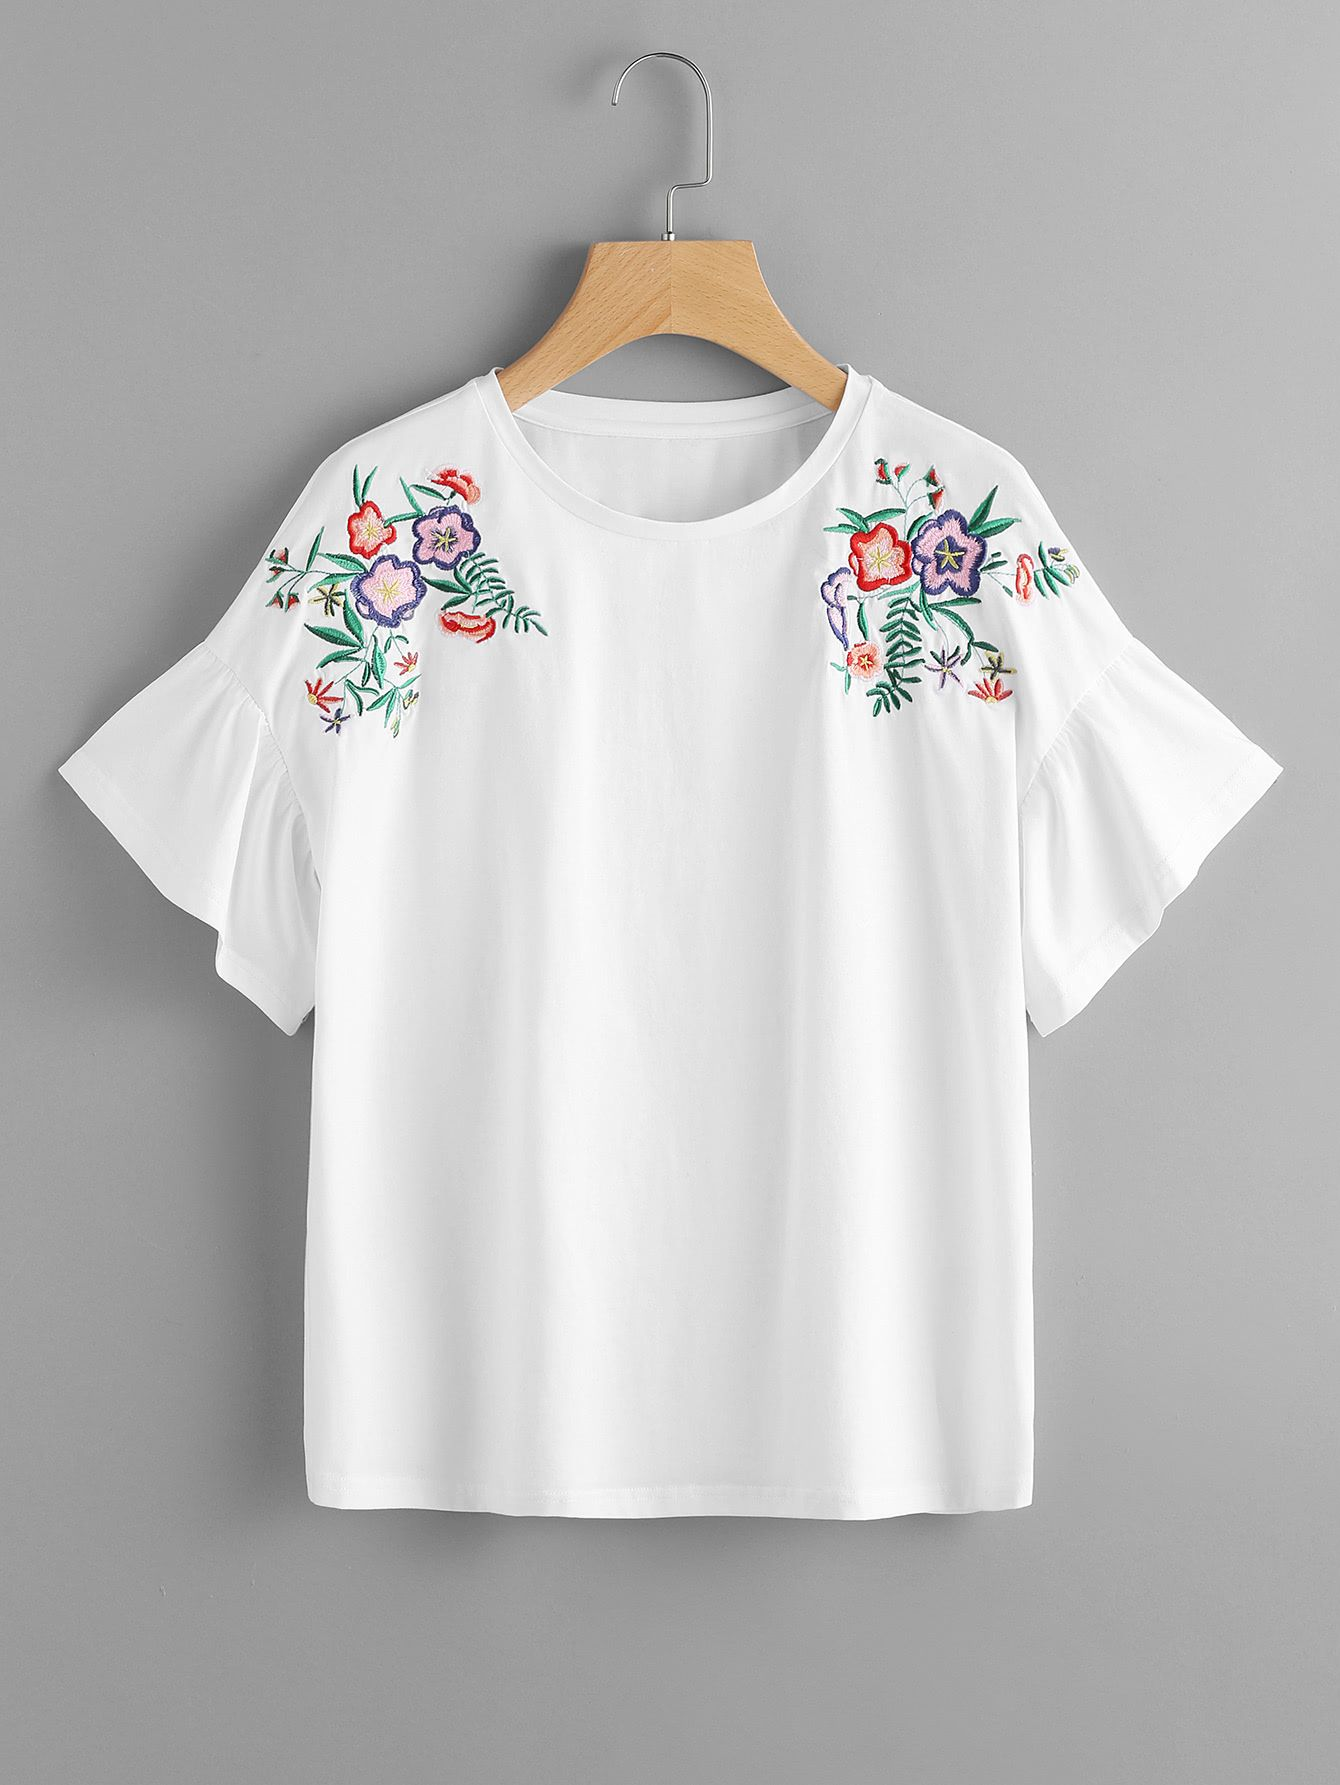 44e54eb04 Shop Flower Embroidered Frill Sleeve Tee online. SheIn offers Flower  Embroidered Frill Sleeve Tee & more to fit your fashionable needs.